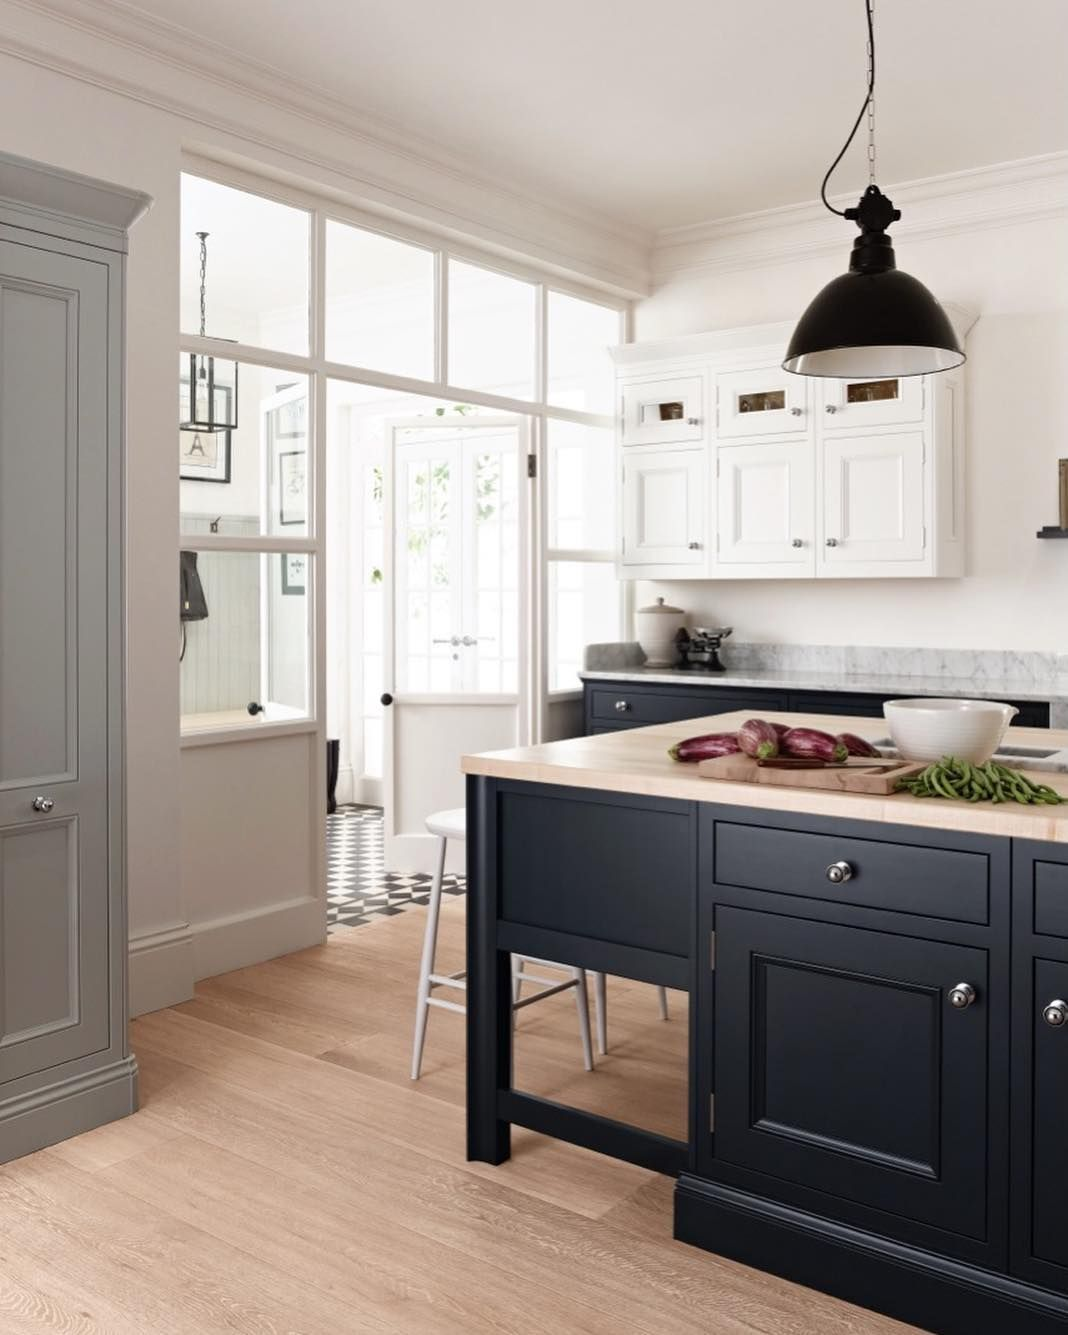 Trying To Pick A Colour To Accompany Natural Wood Tones In Your Kitchen We Love This Combination Of A Bol 1909 Kitchens Kitchen Fittings Kitchen Quarter Round